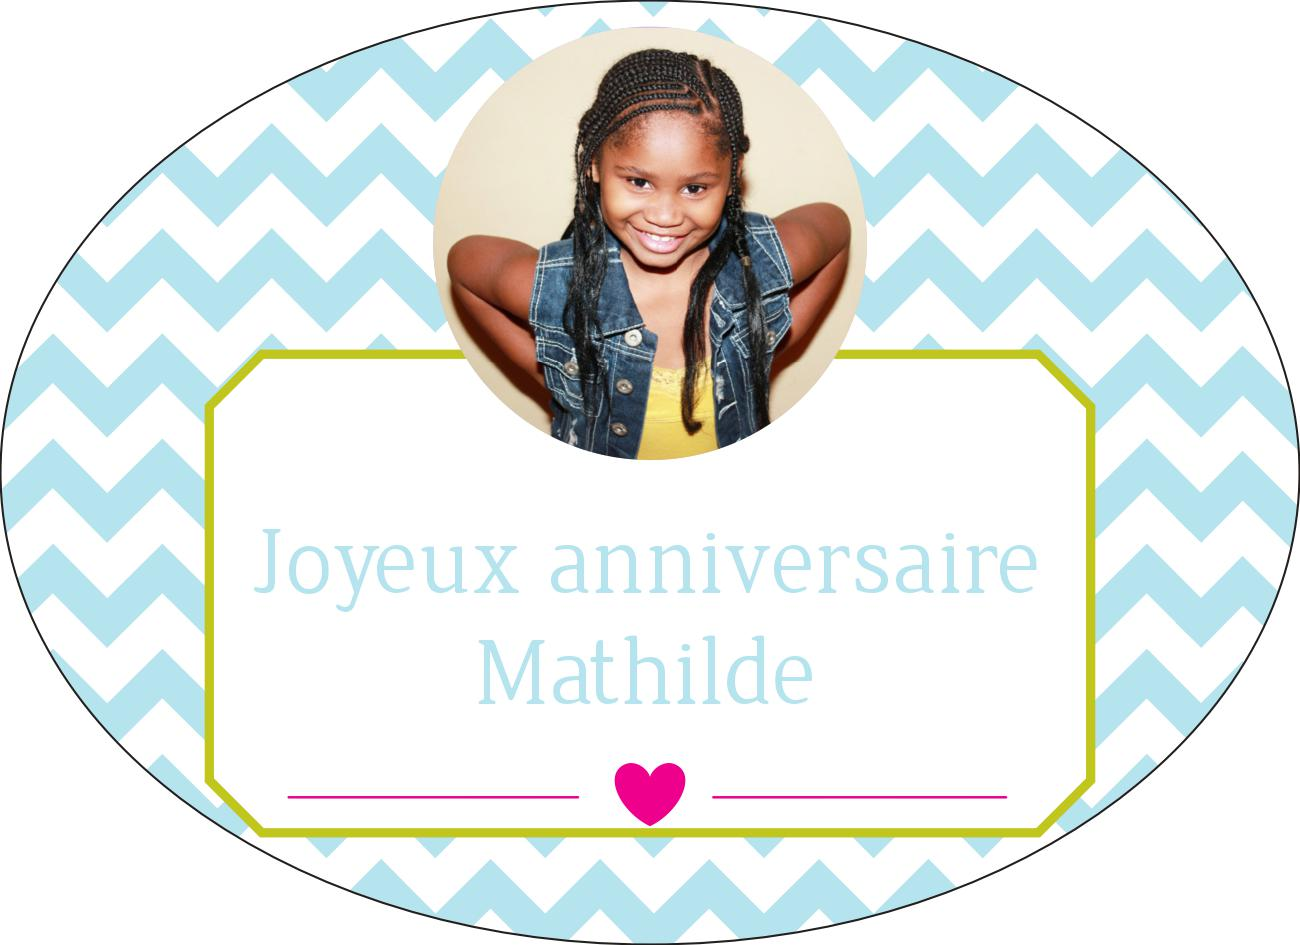 birthday-children-mathilde_has-image